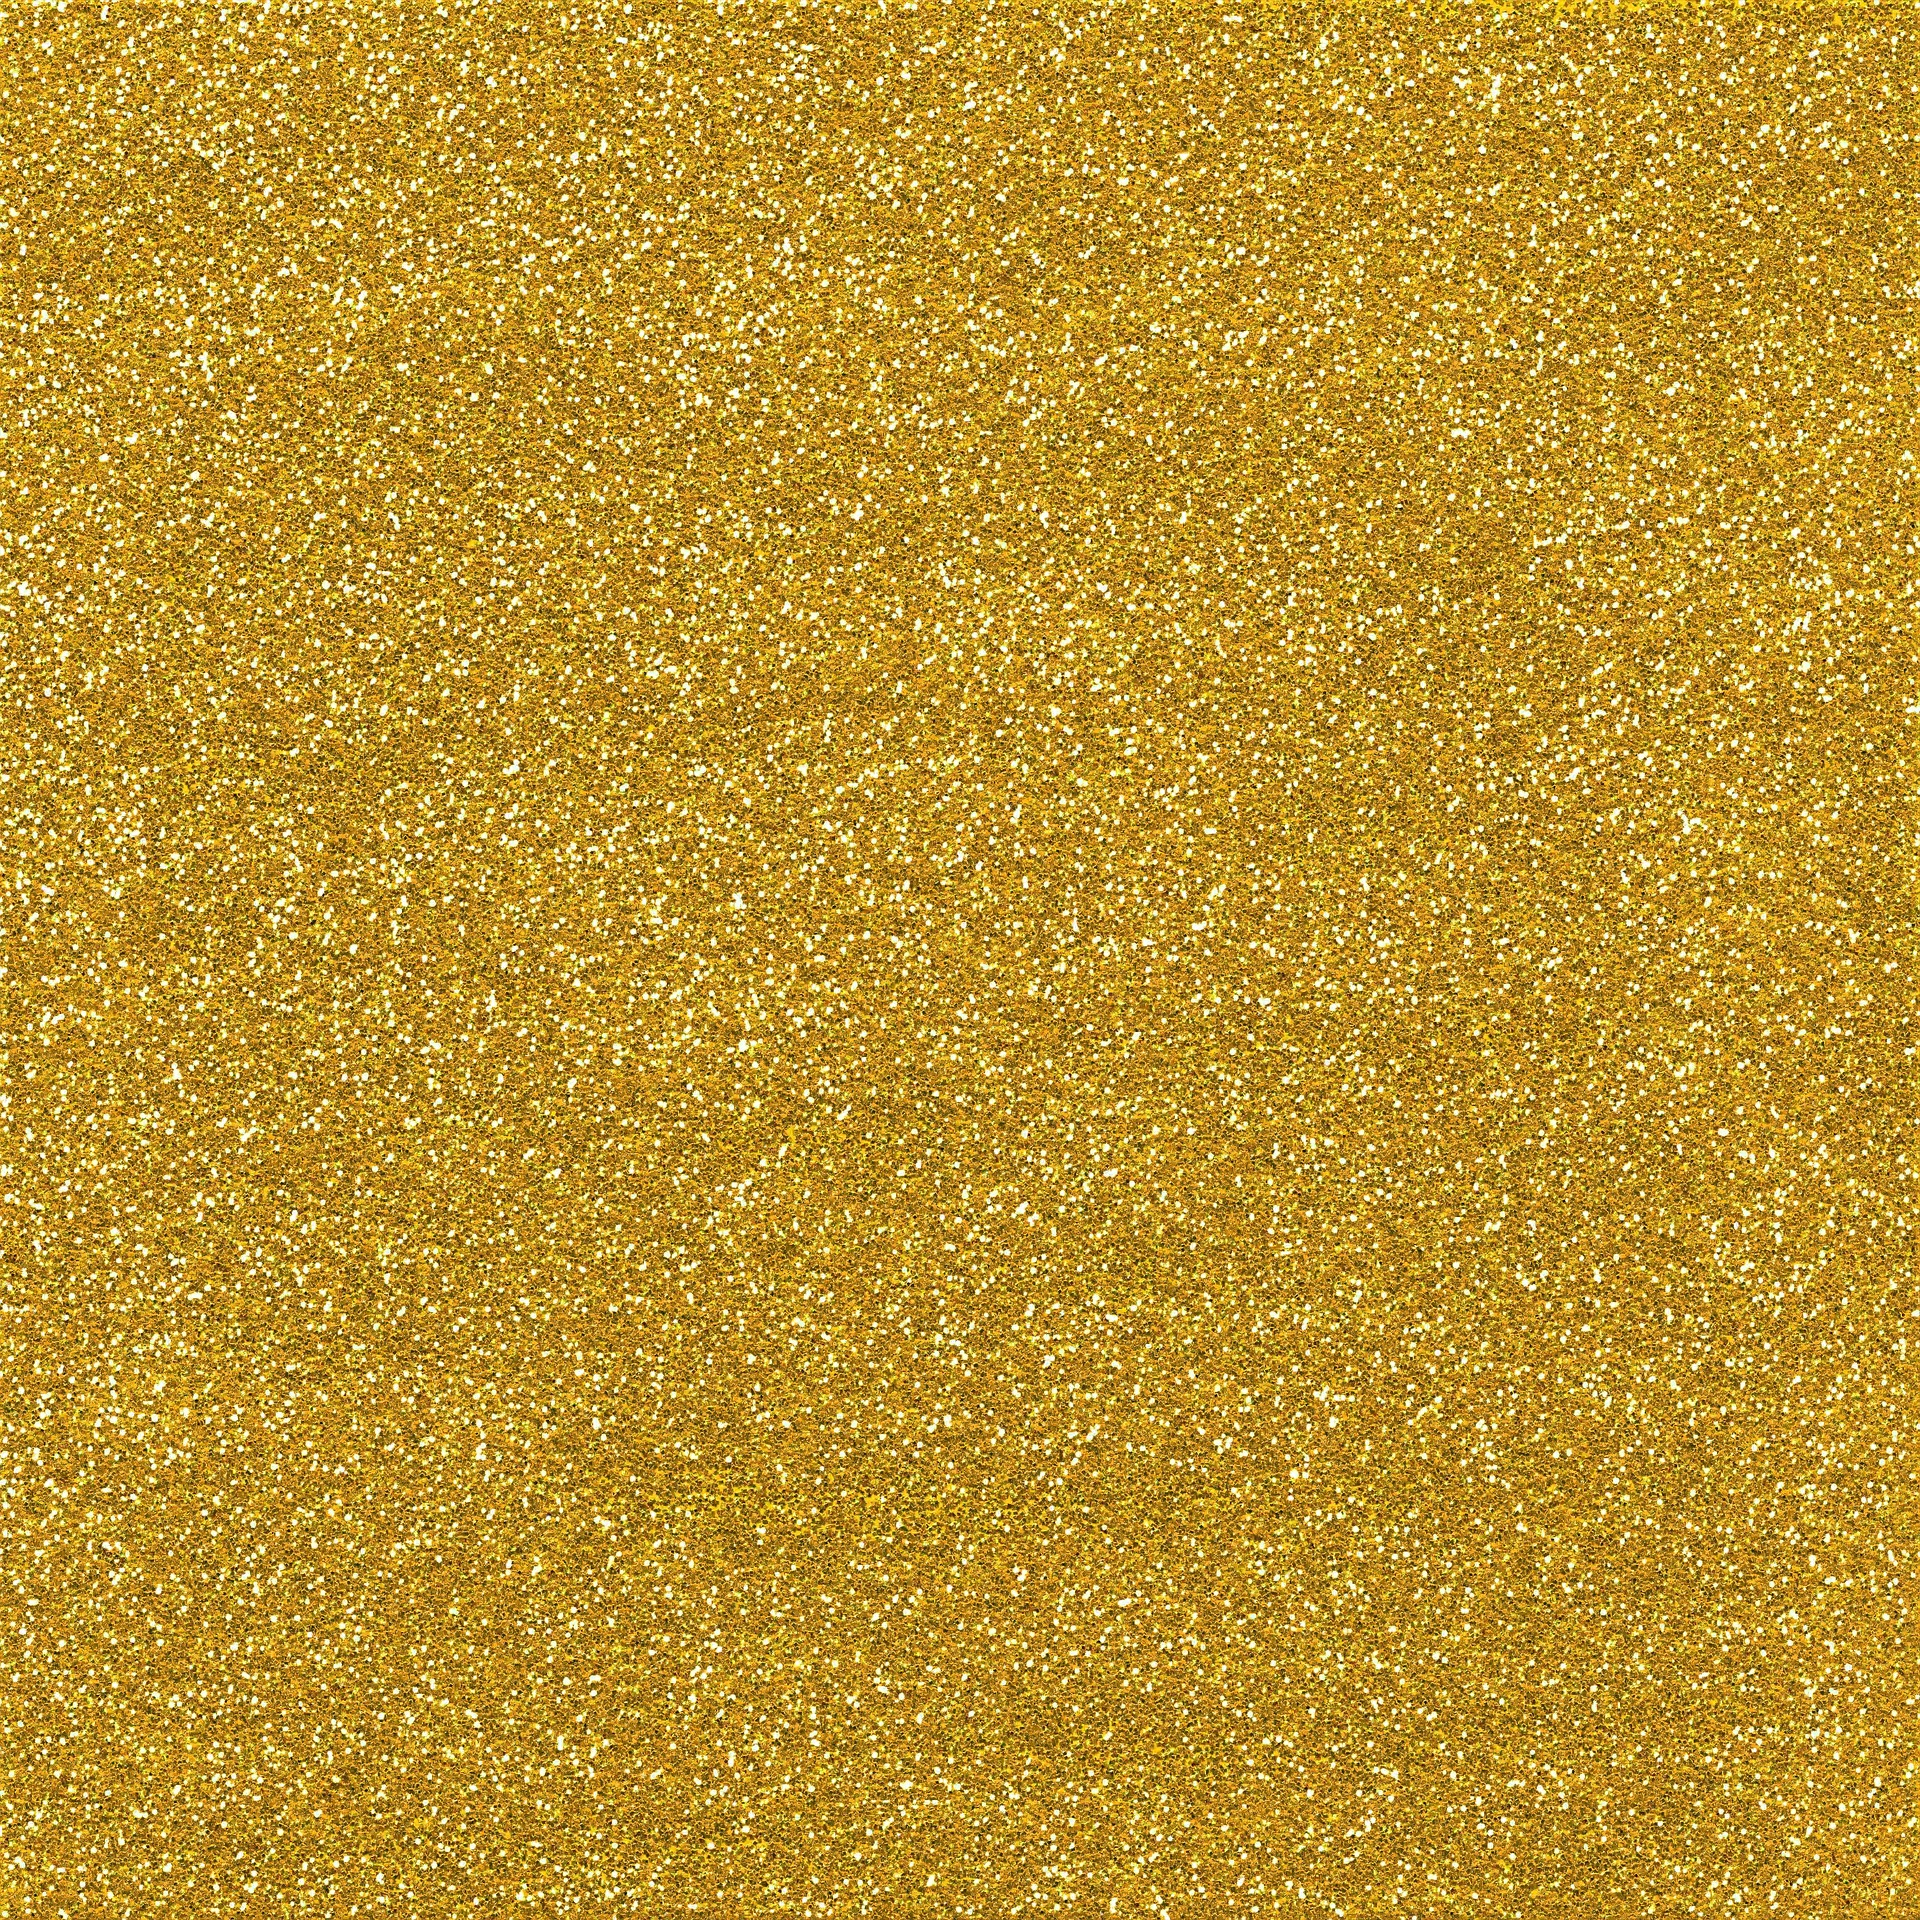 Gold Dust!